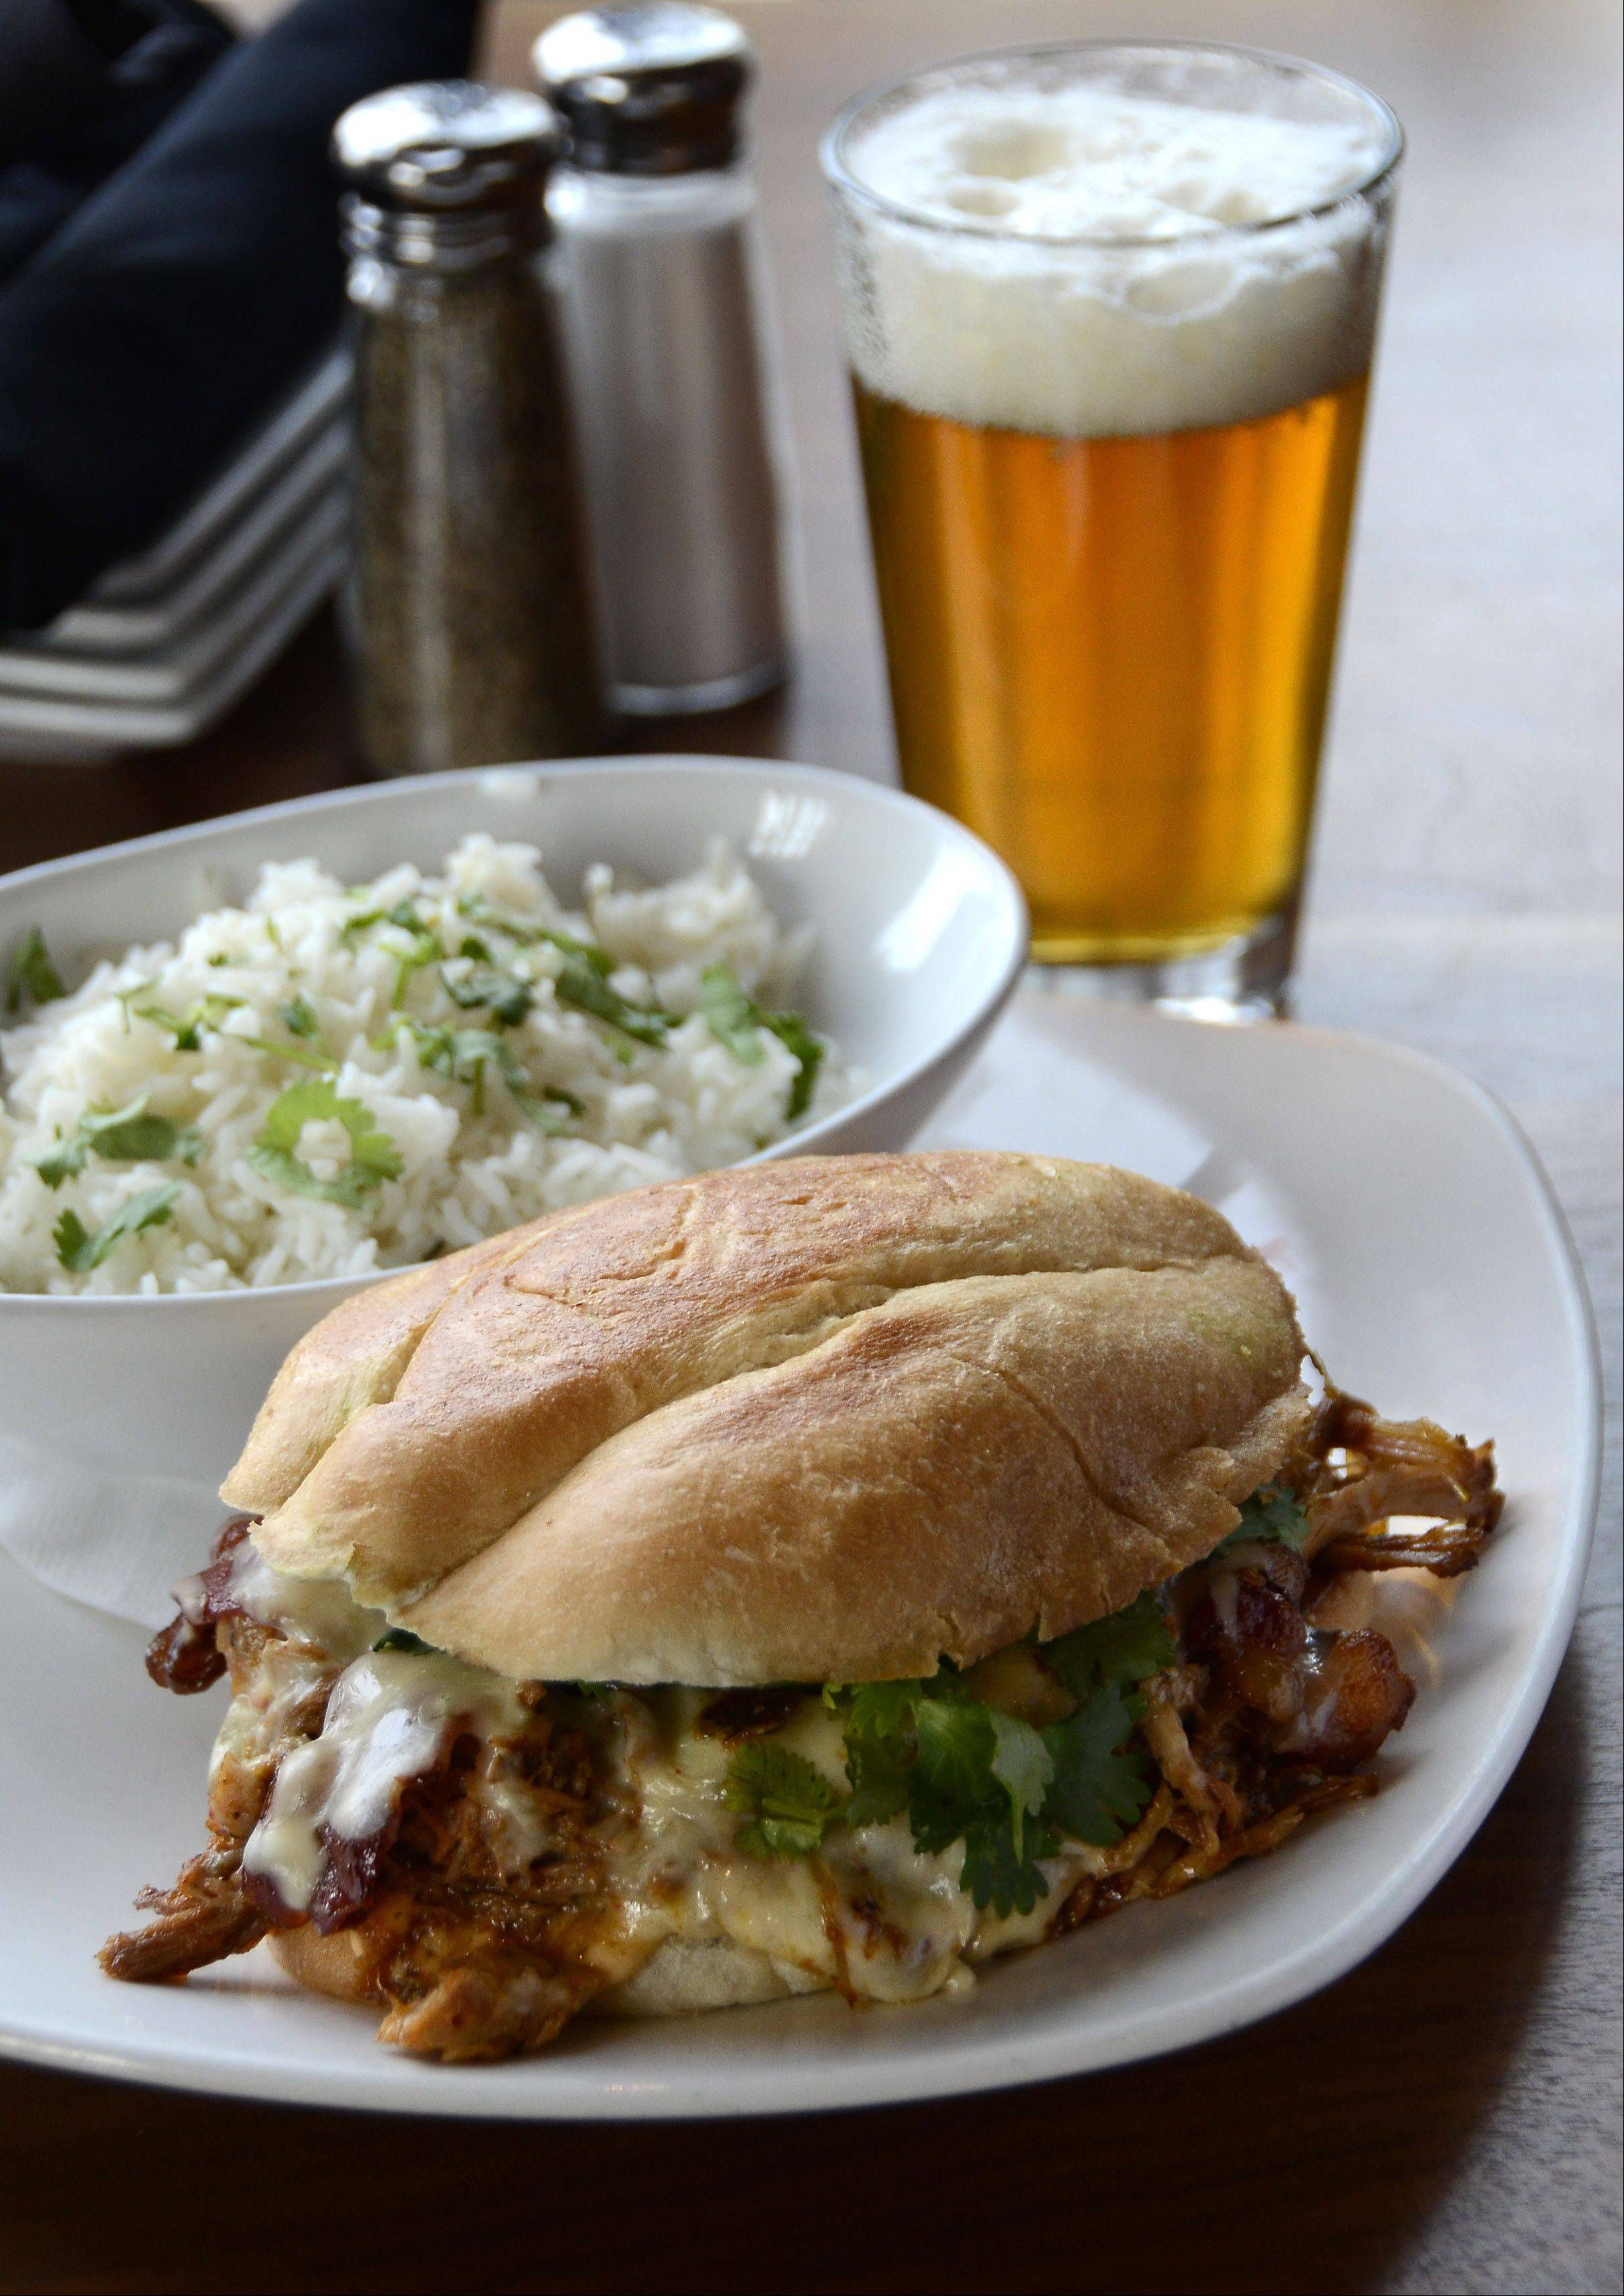 Park Tavern's Mexibano sandwich features spiced pulled pork, Applewood bacon and chihuahua cheese. Served with cilantro-studded rice and a crisp wheat beer, it's a perfect meal.